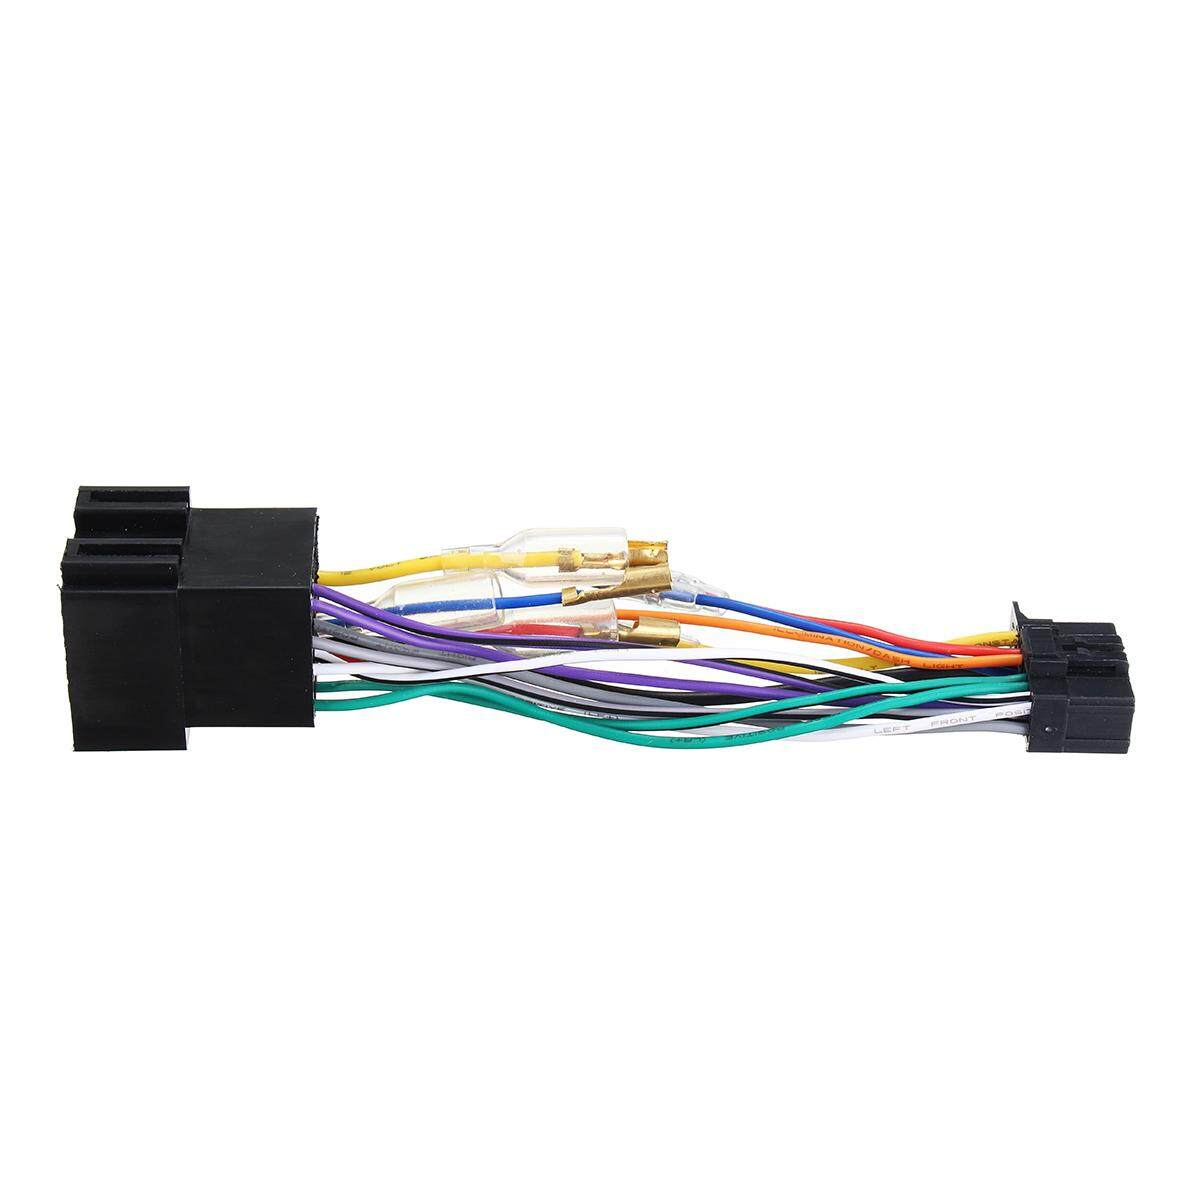 Fitur For Pioneer 16 Pin Iso Wiring Harness Connector Adaptor Car Loom Adhesive Cloth Fabric Tape Stereo Radio Pi100 Intl